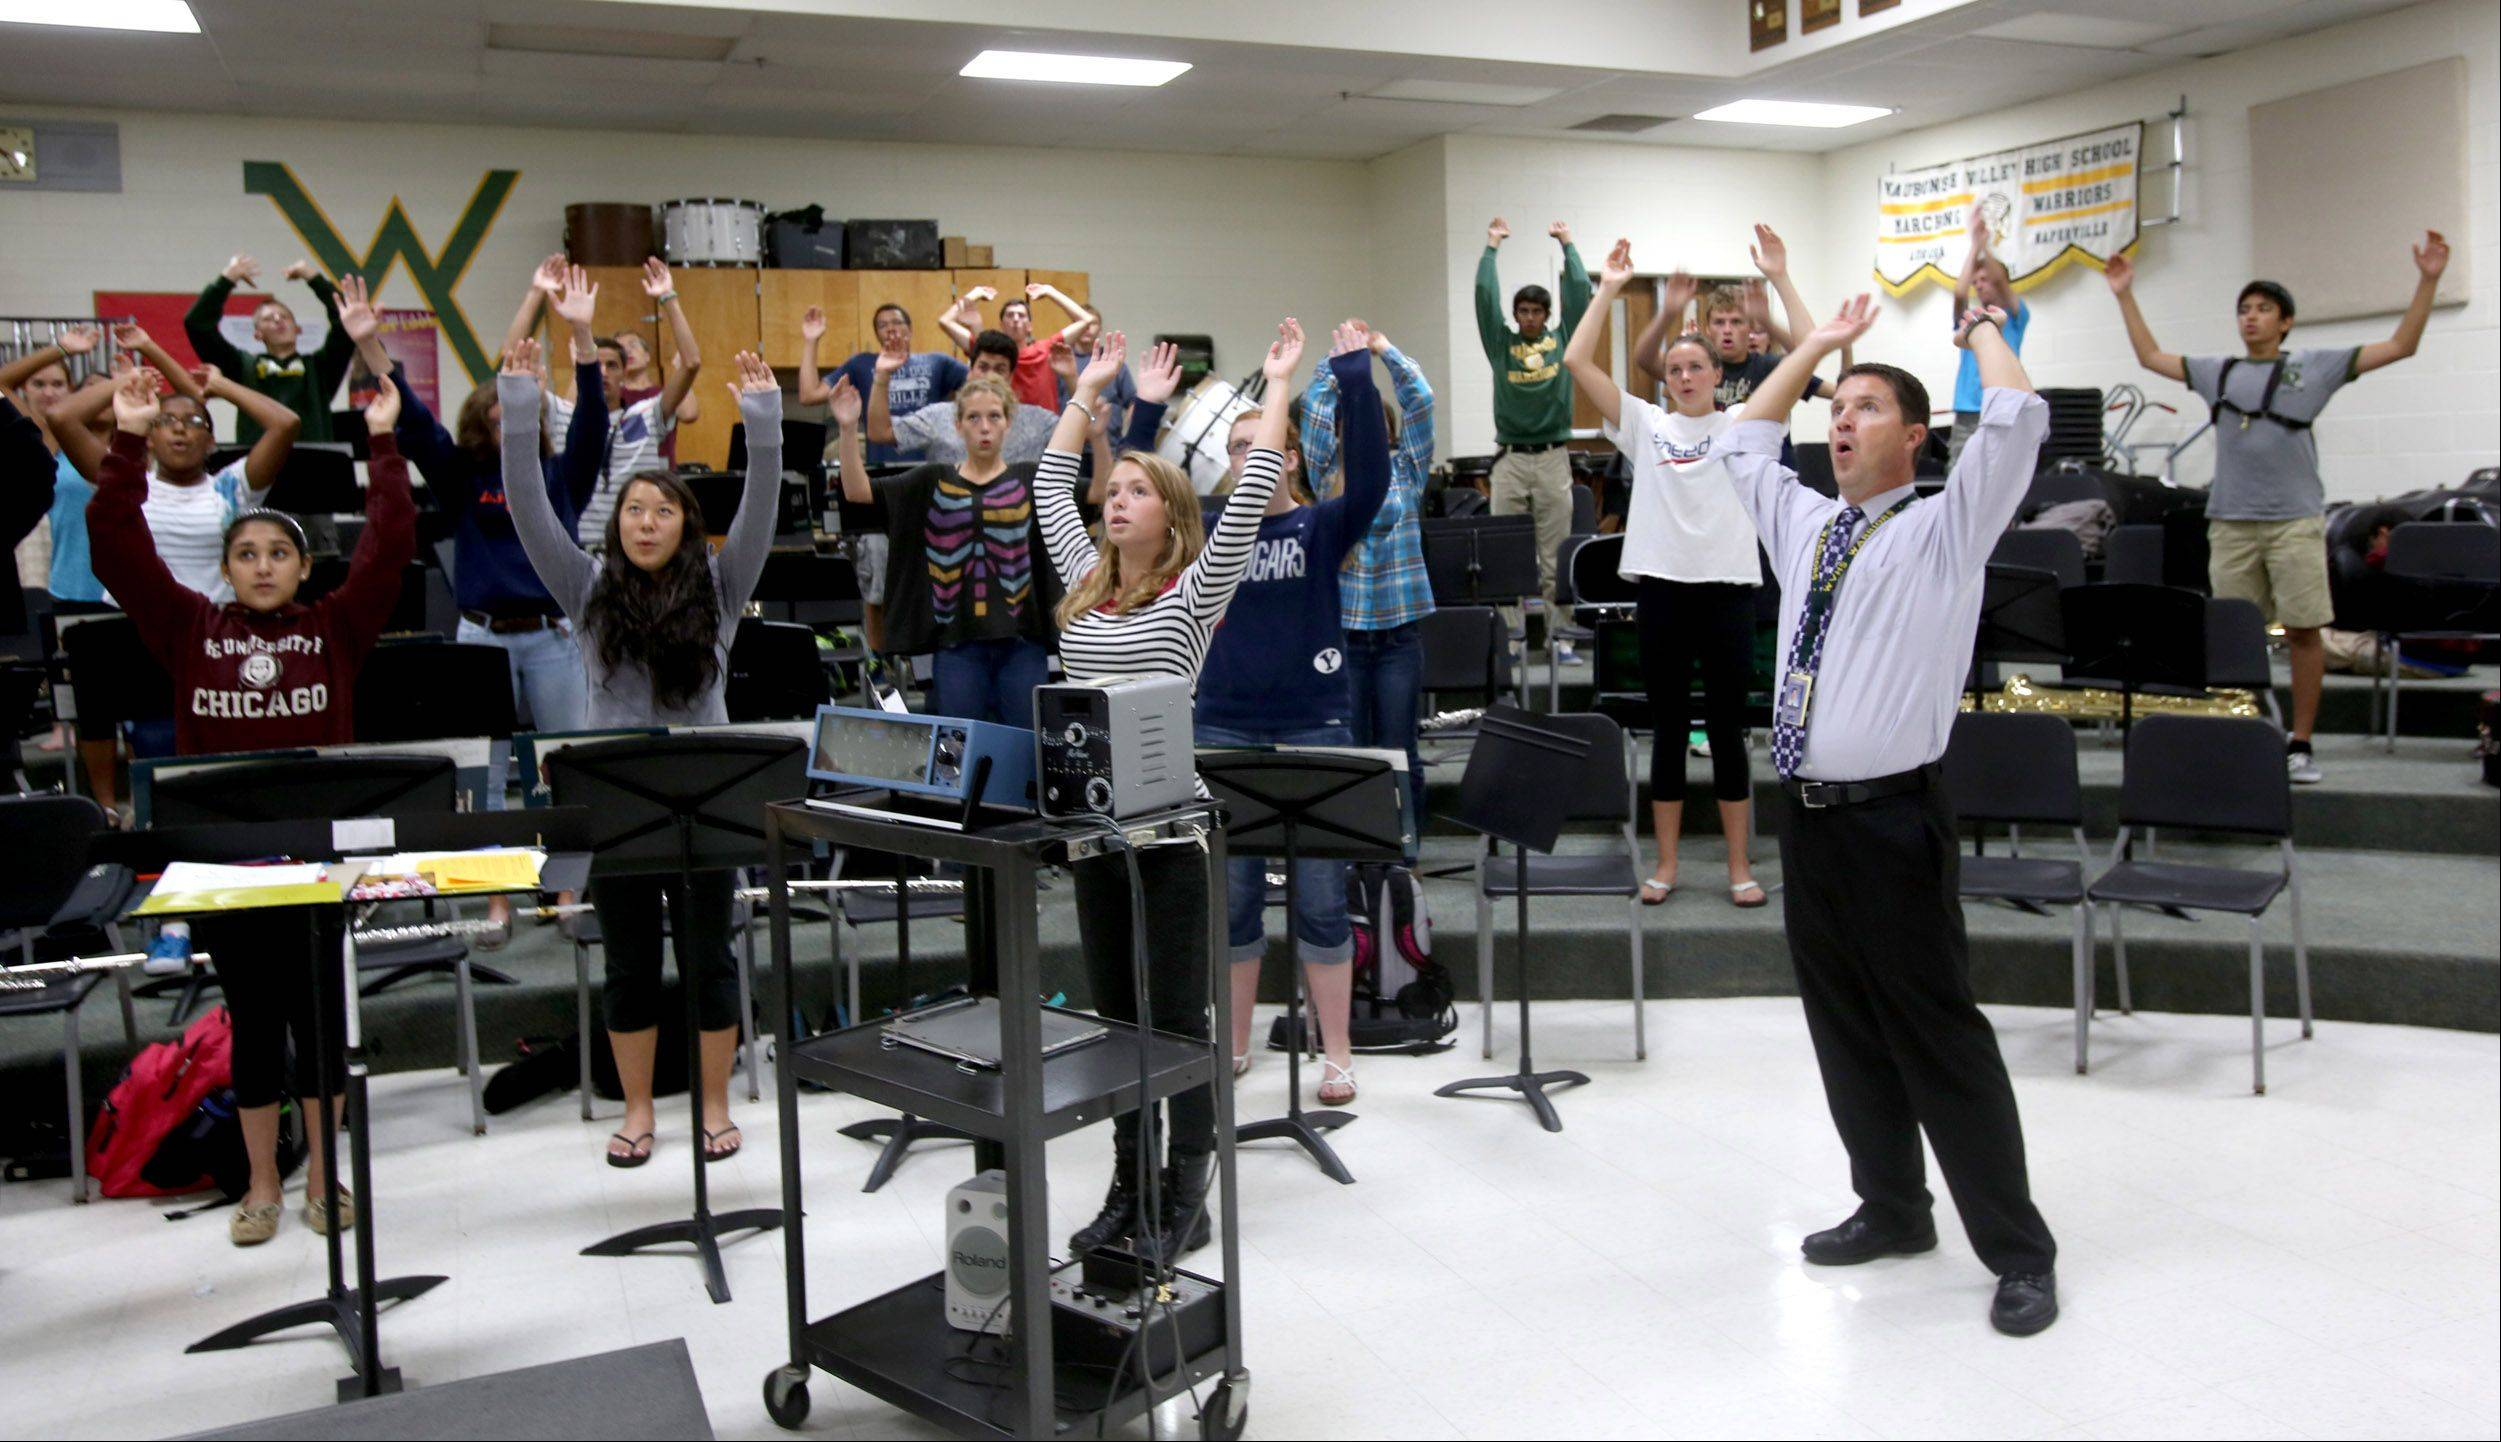 Mark Duker, chairman of the fine arts department at Waubonsie Valley High School in Aurora, leads the Wind Ensemble in stretching and breathing exercises before rehearsal. Duker is one of 25 semifinalists for the first Grammy Award for music educators.